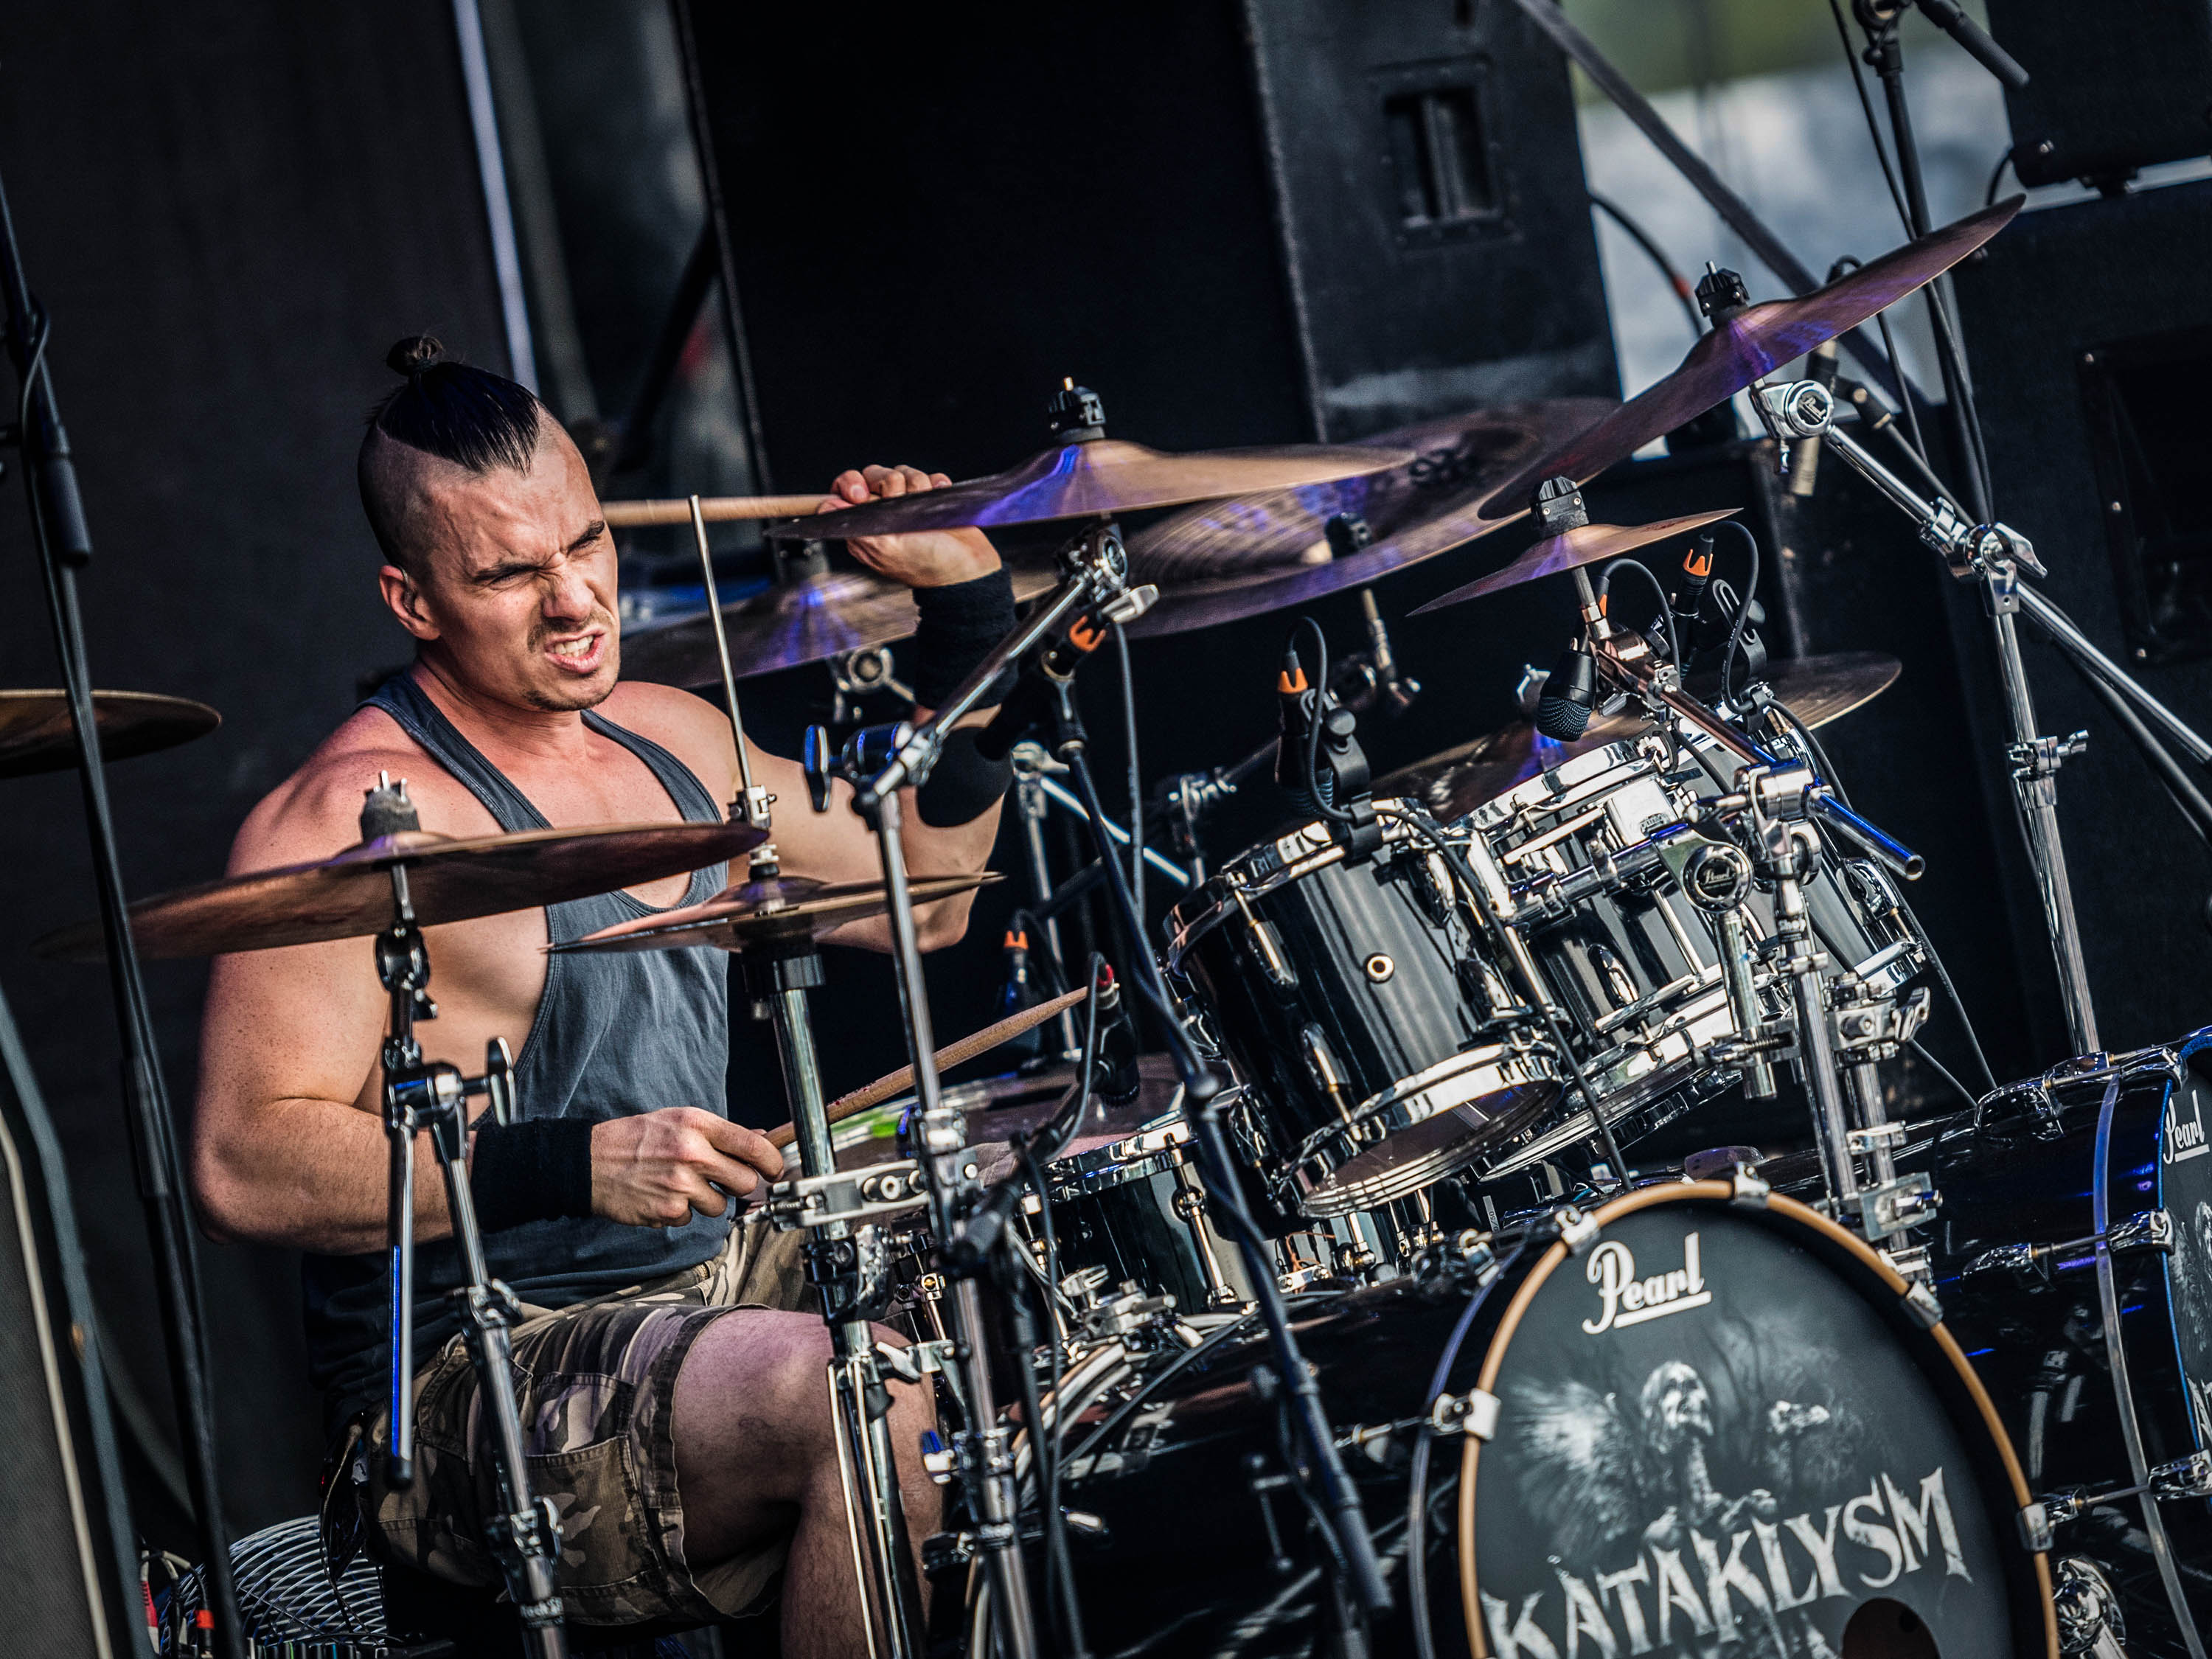 Oli Beaudoin (2017) - With Kataklysm at Bang Your Head Festival 2